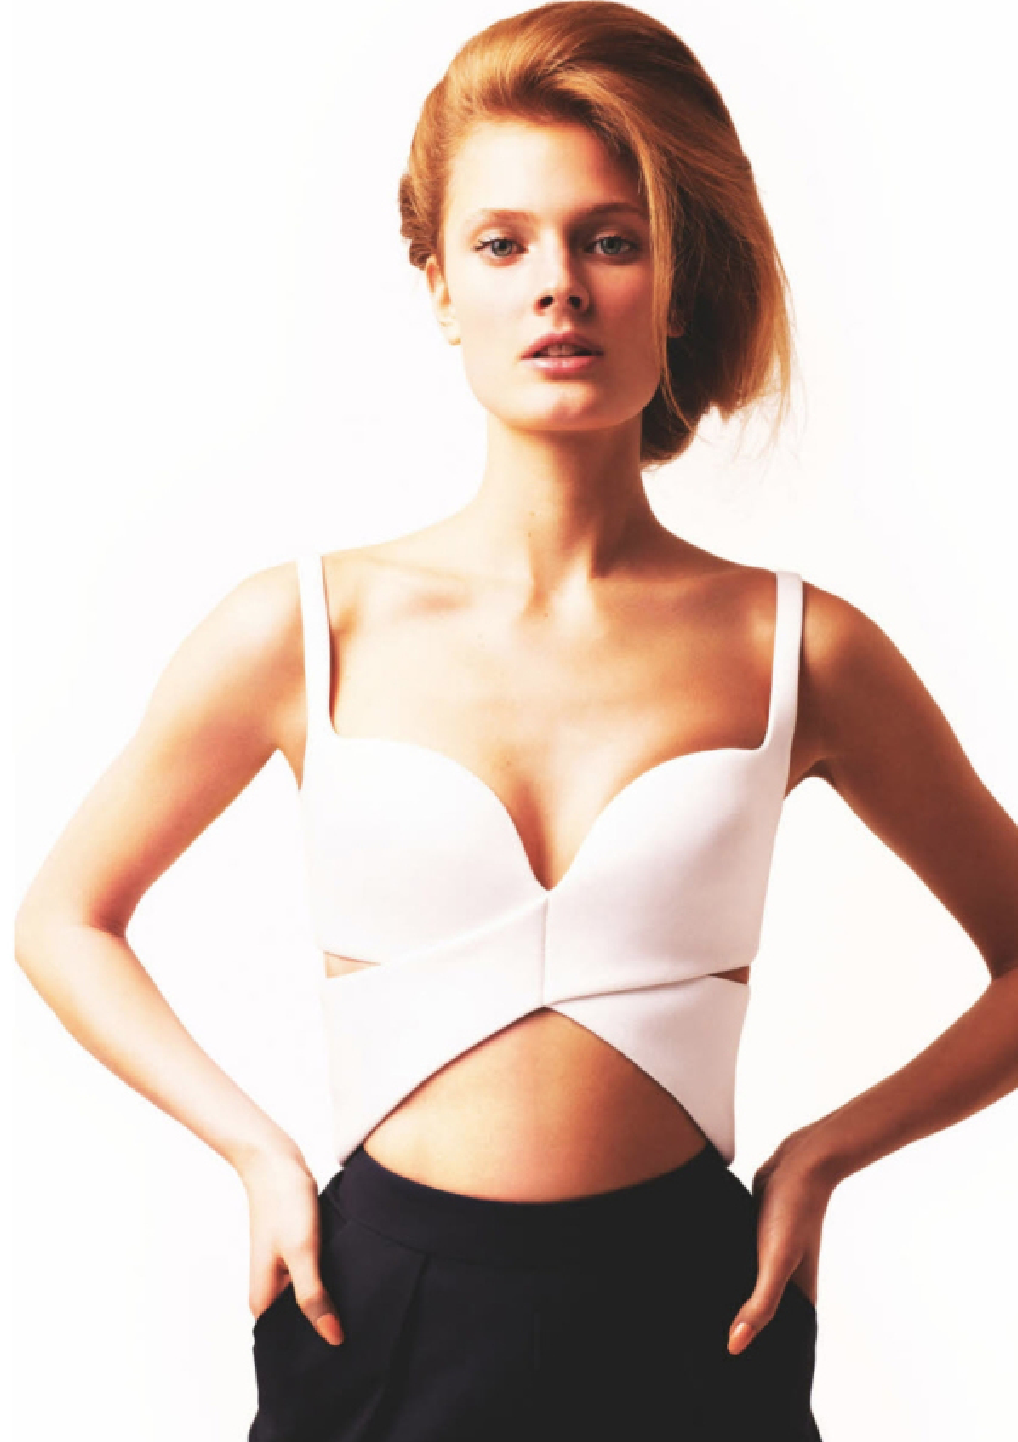 Numéro March 2013 Balenciaga Bustier by Katja Rahwles